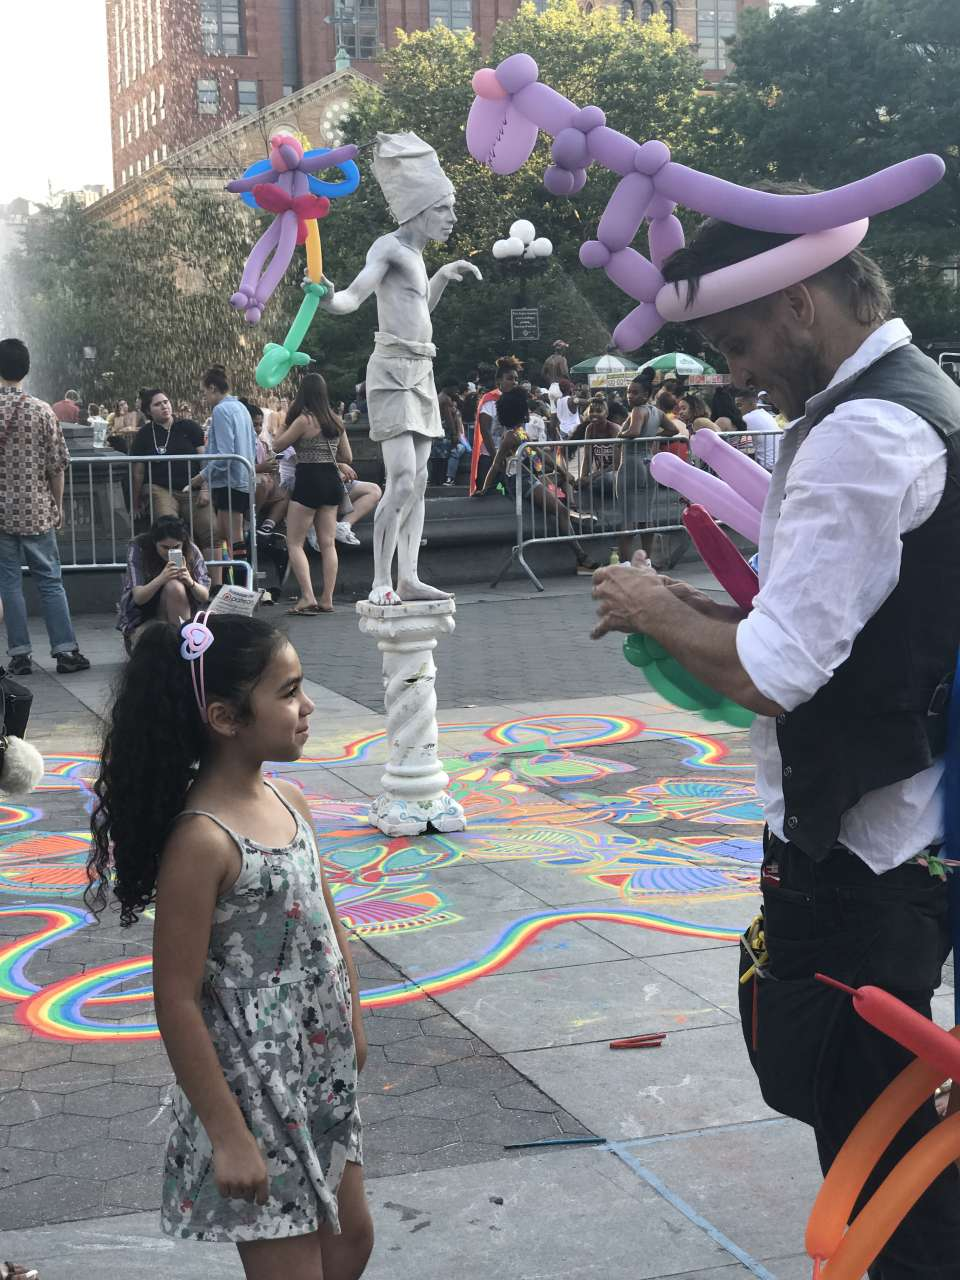 girl-India-Jolie-waiting-for-balloon-character-in-washington-square-park